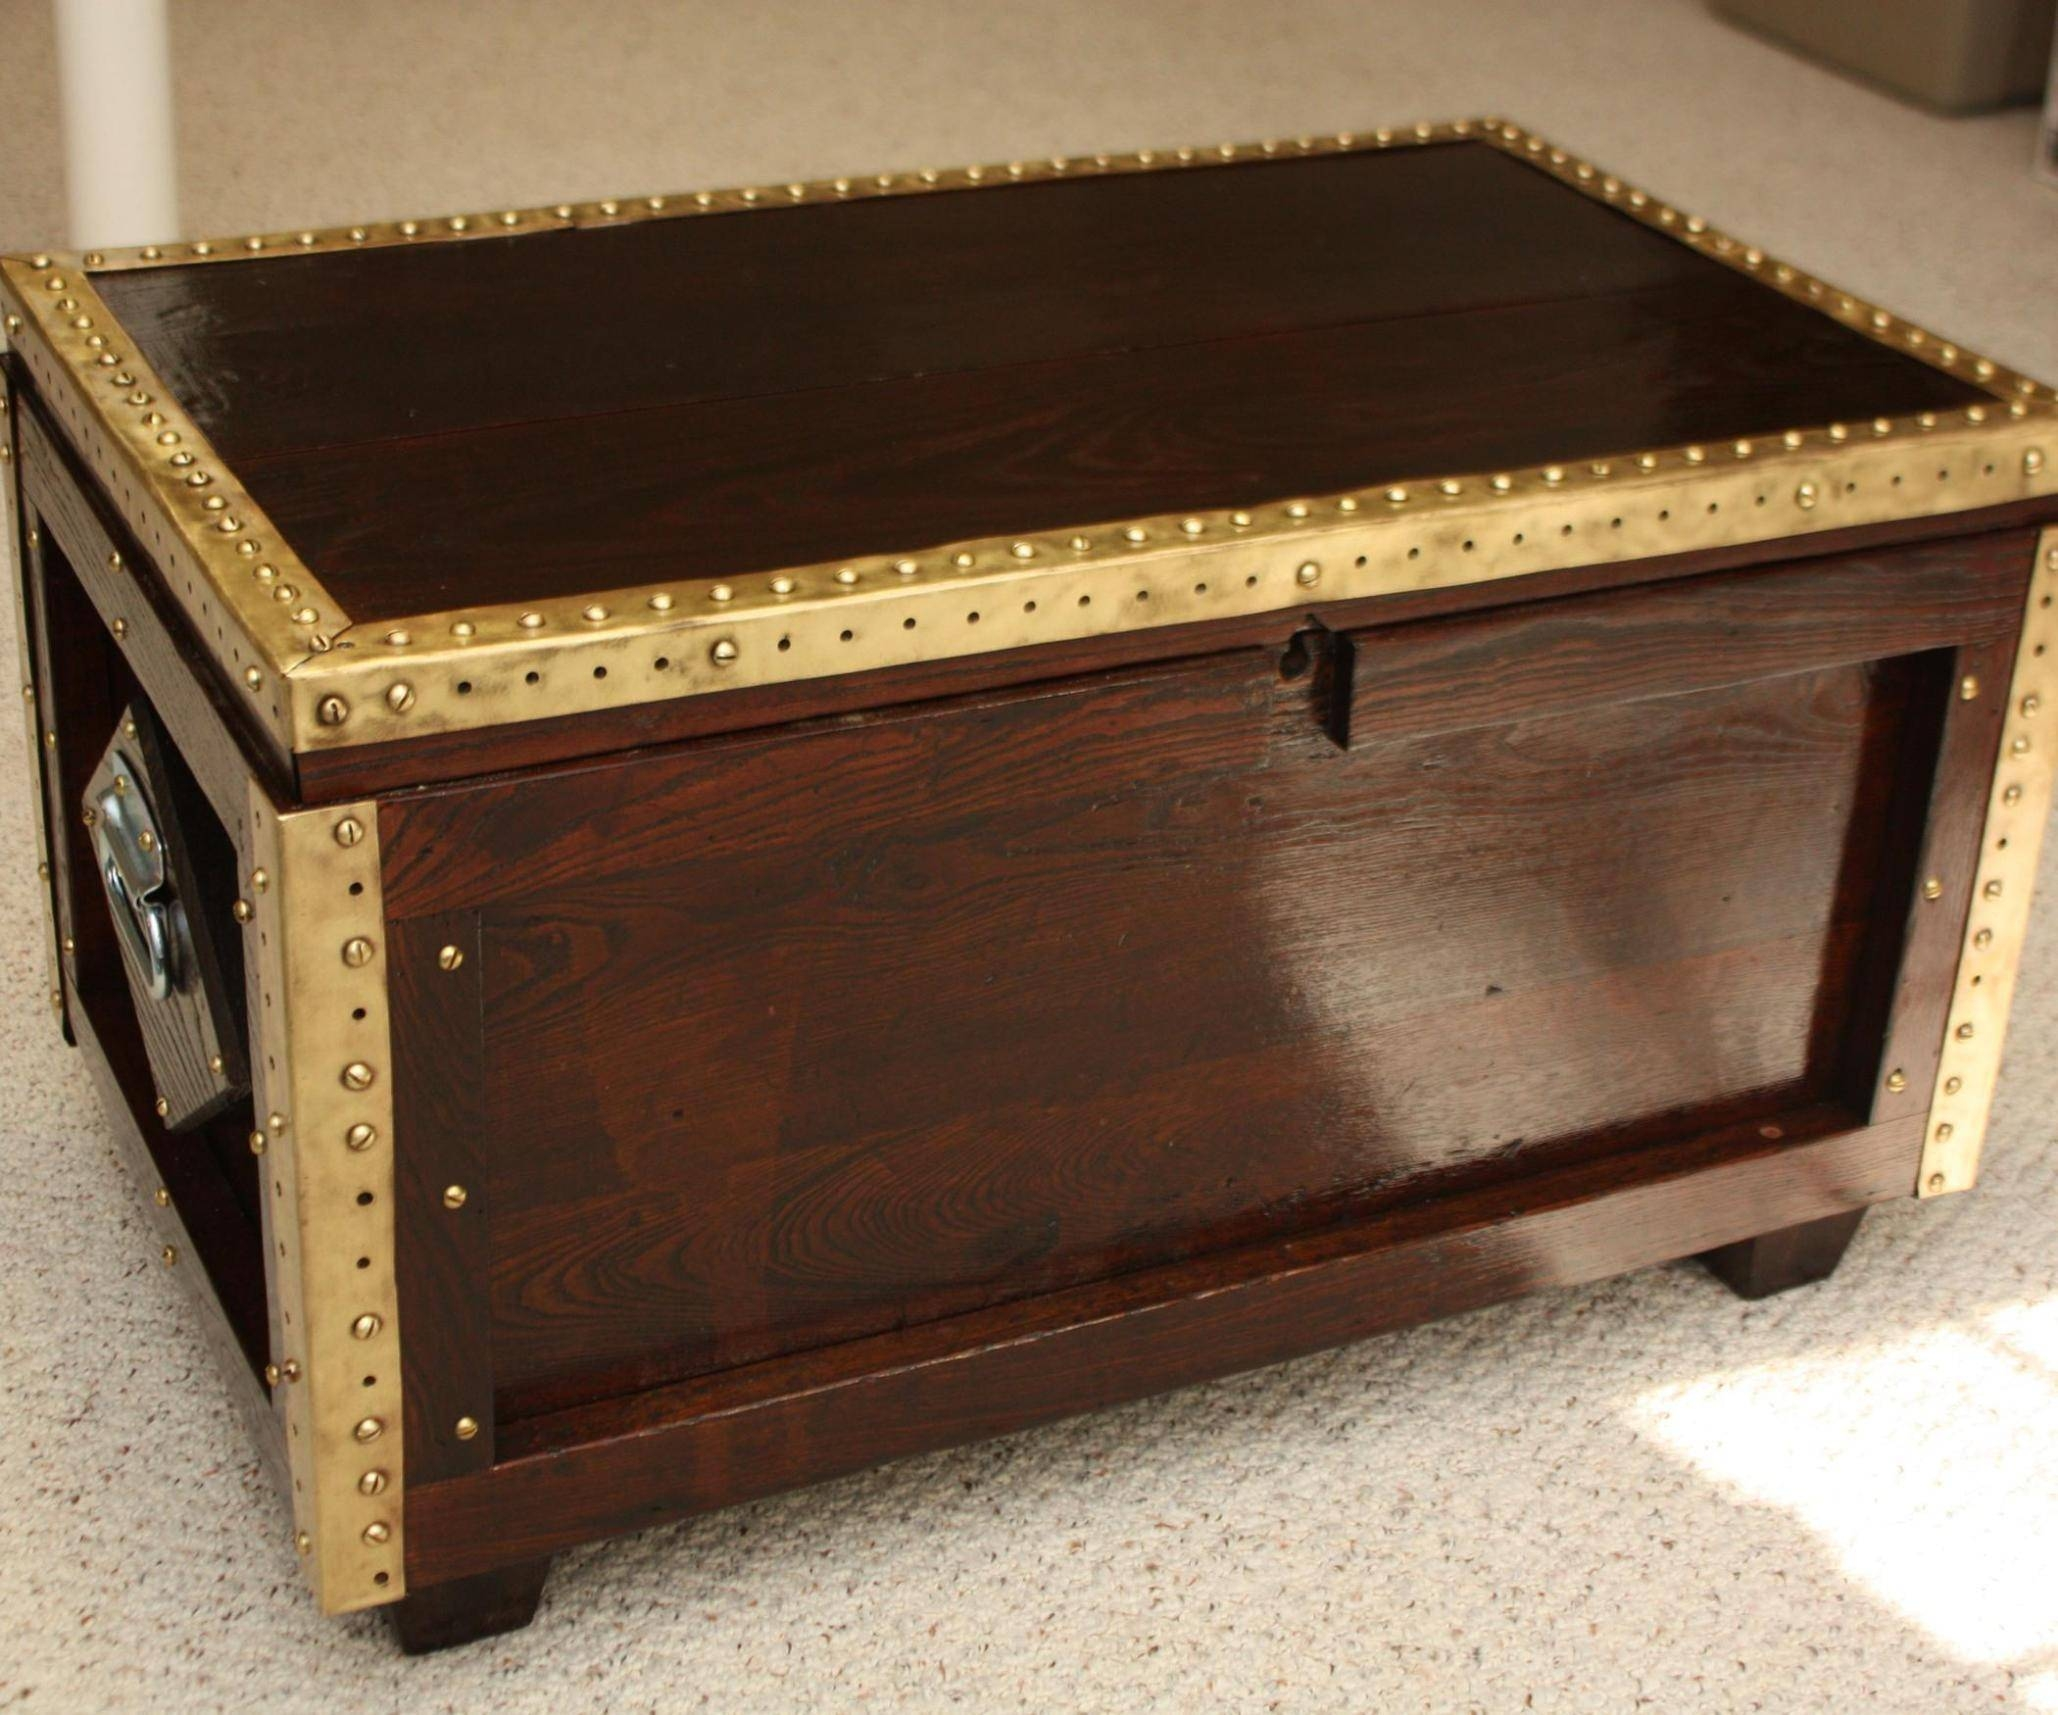 Compare Rustic Trunk Coffee Table | Coffee Tables Decoration inside Storage Trunk Coffee Tables (Image 10 of 30)